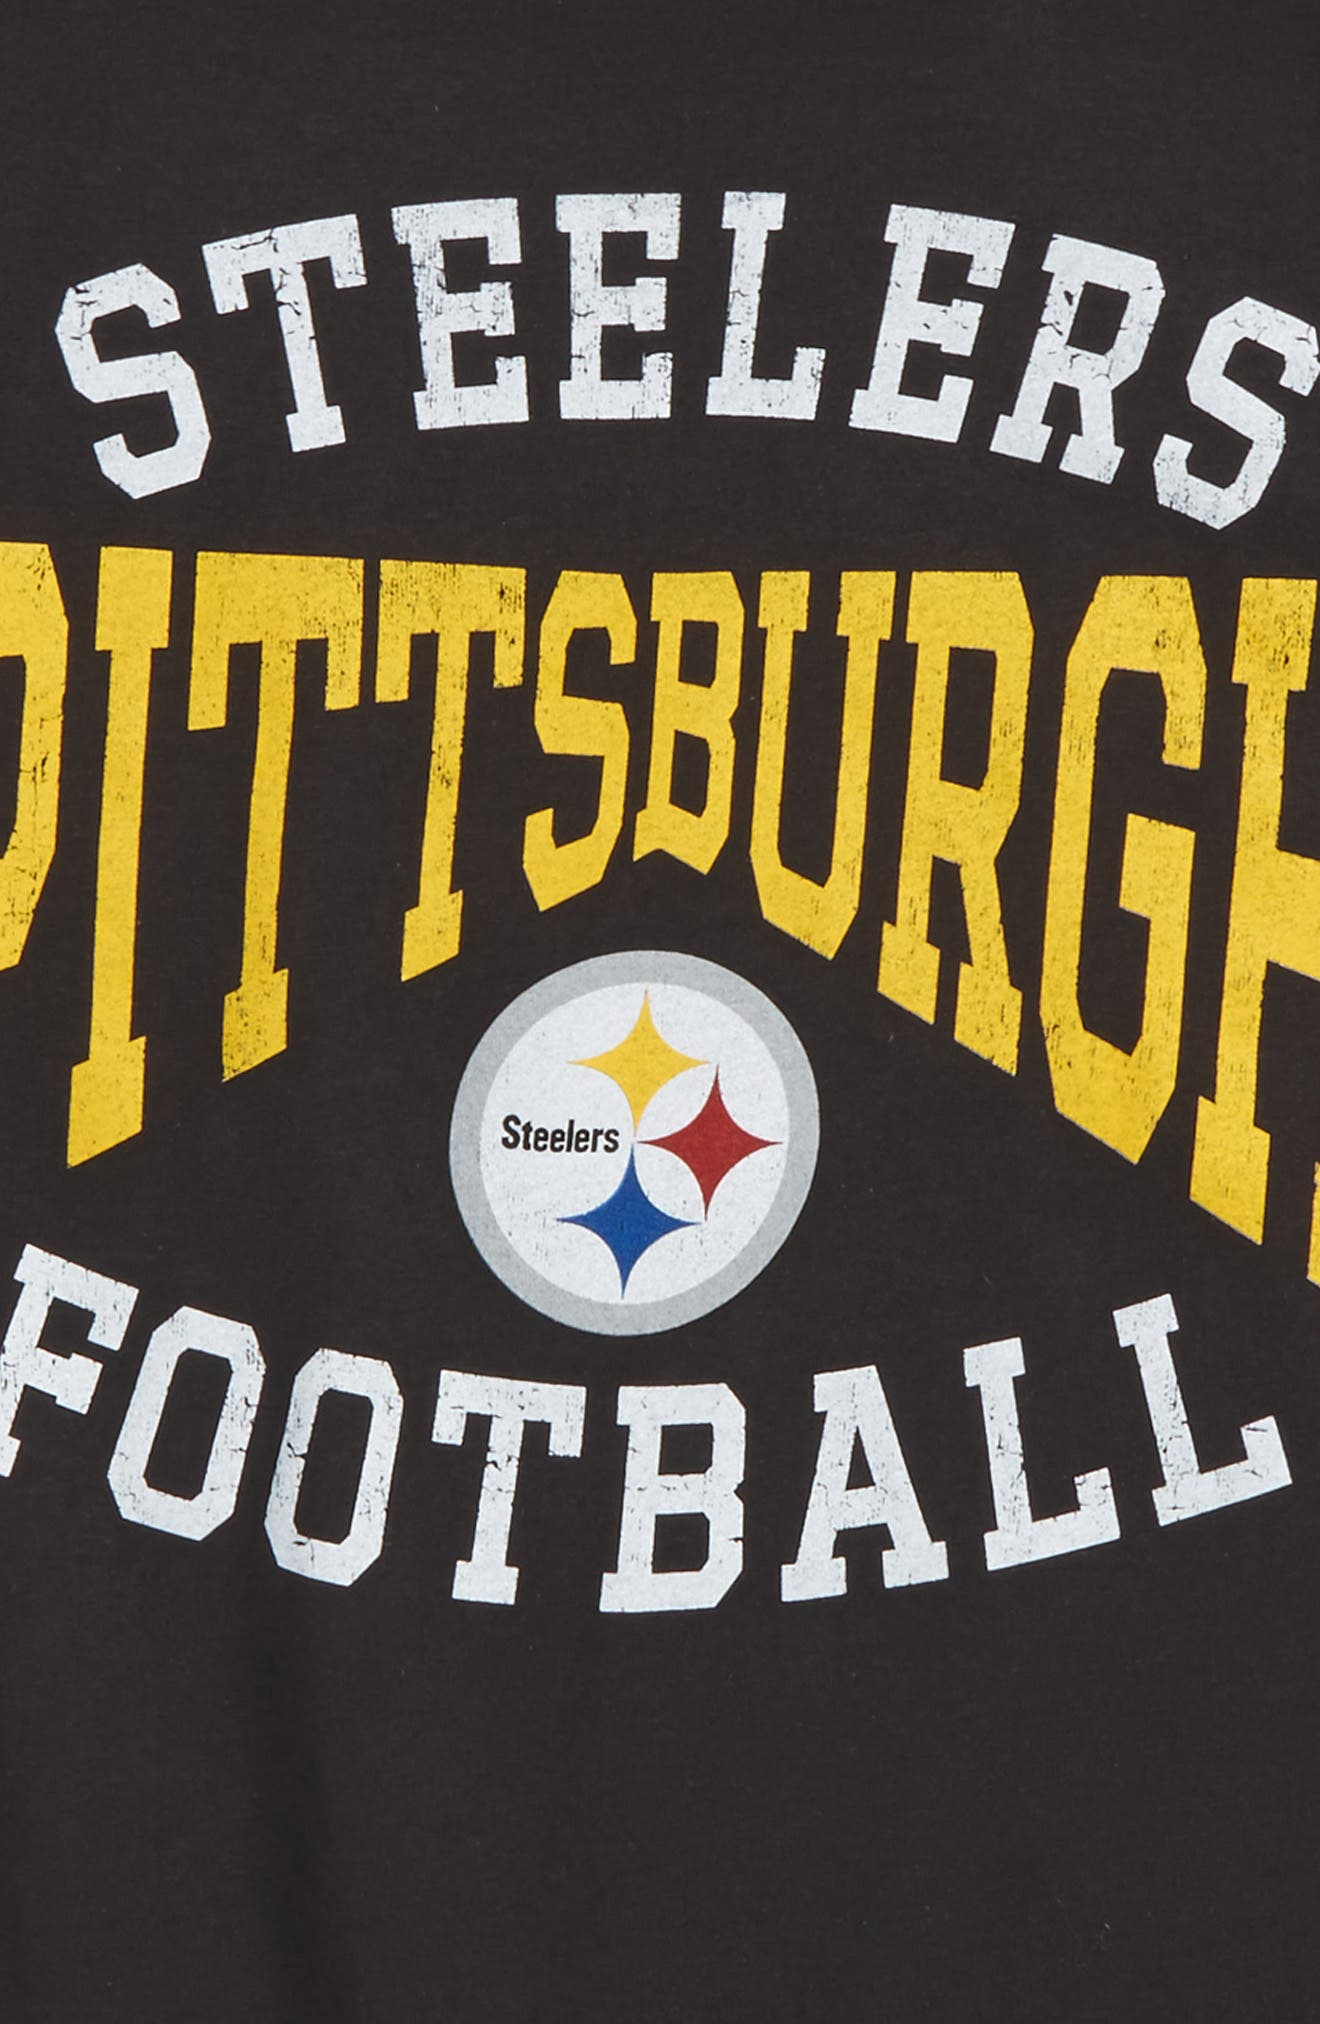 NFL Pitsburgh Steelers Greatness T-Shirt,                             Alternate thumbnail 2, color,                             Black